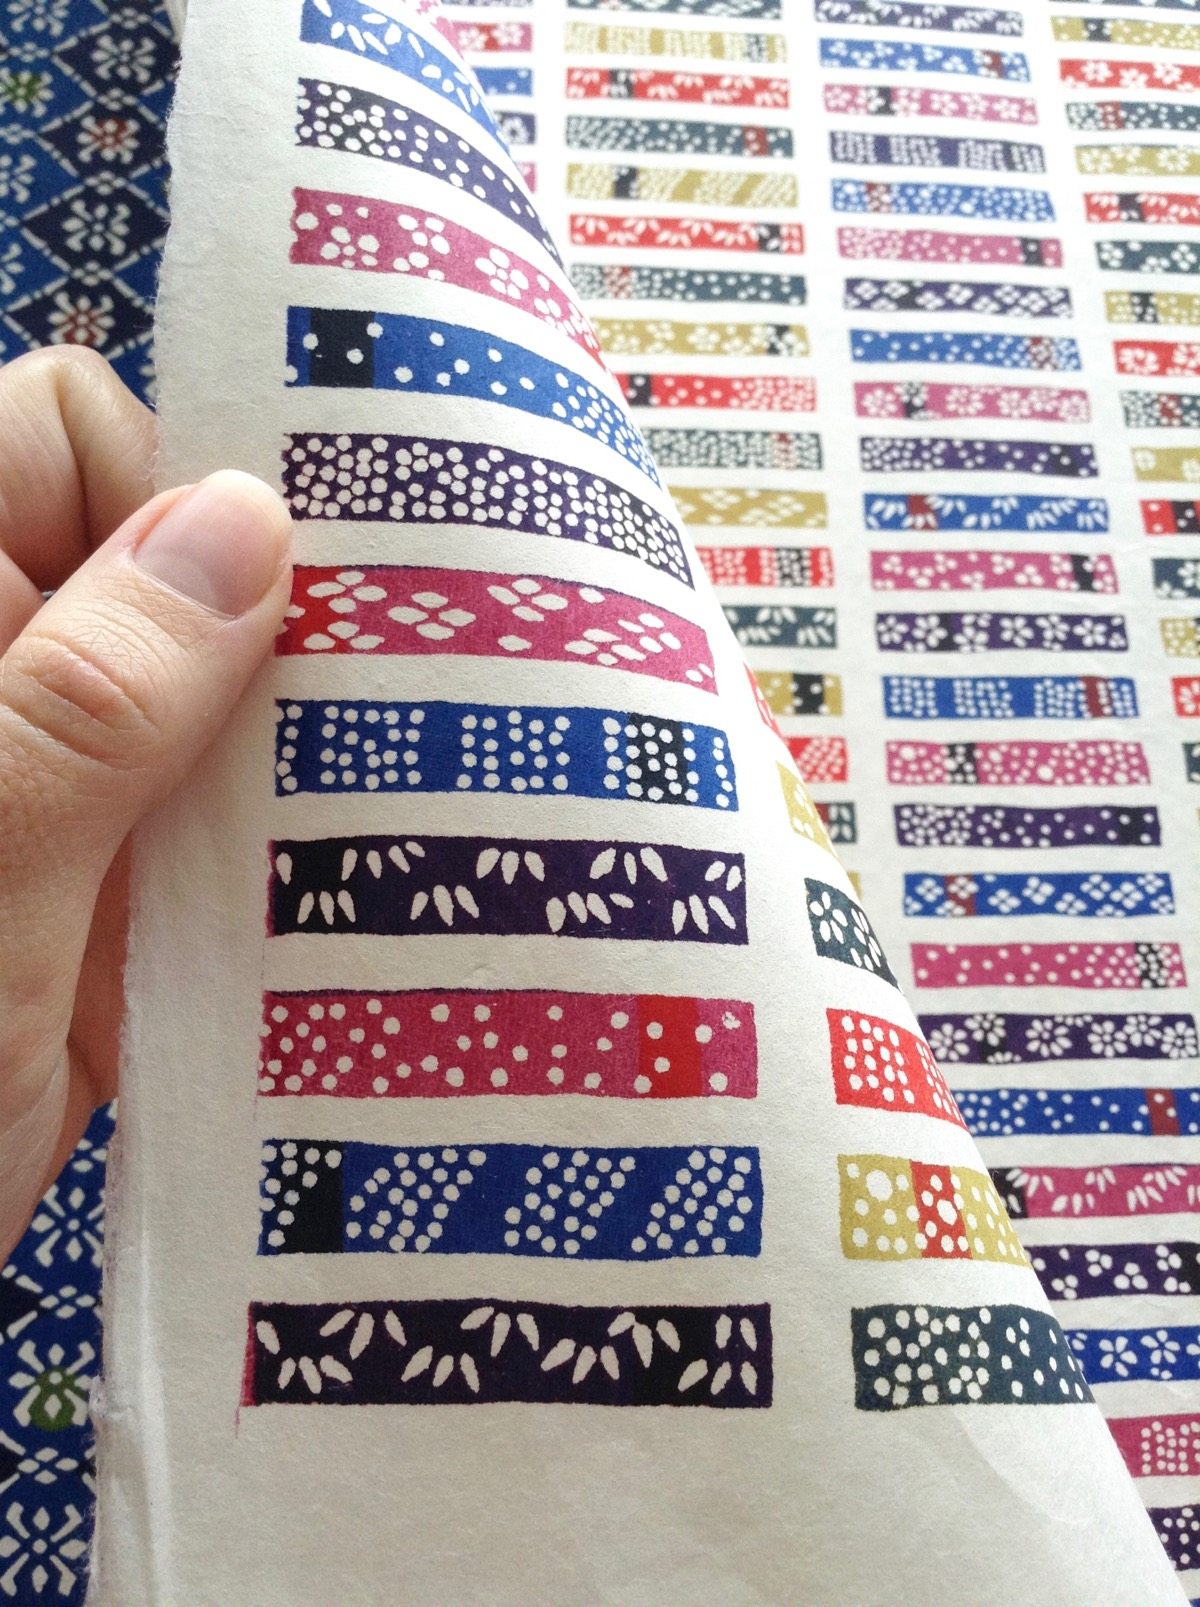 Handmade Chiyogami and Katazome Paper from Japan - 97